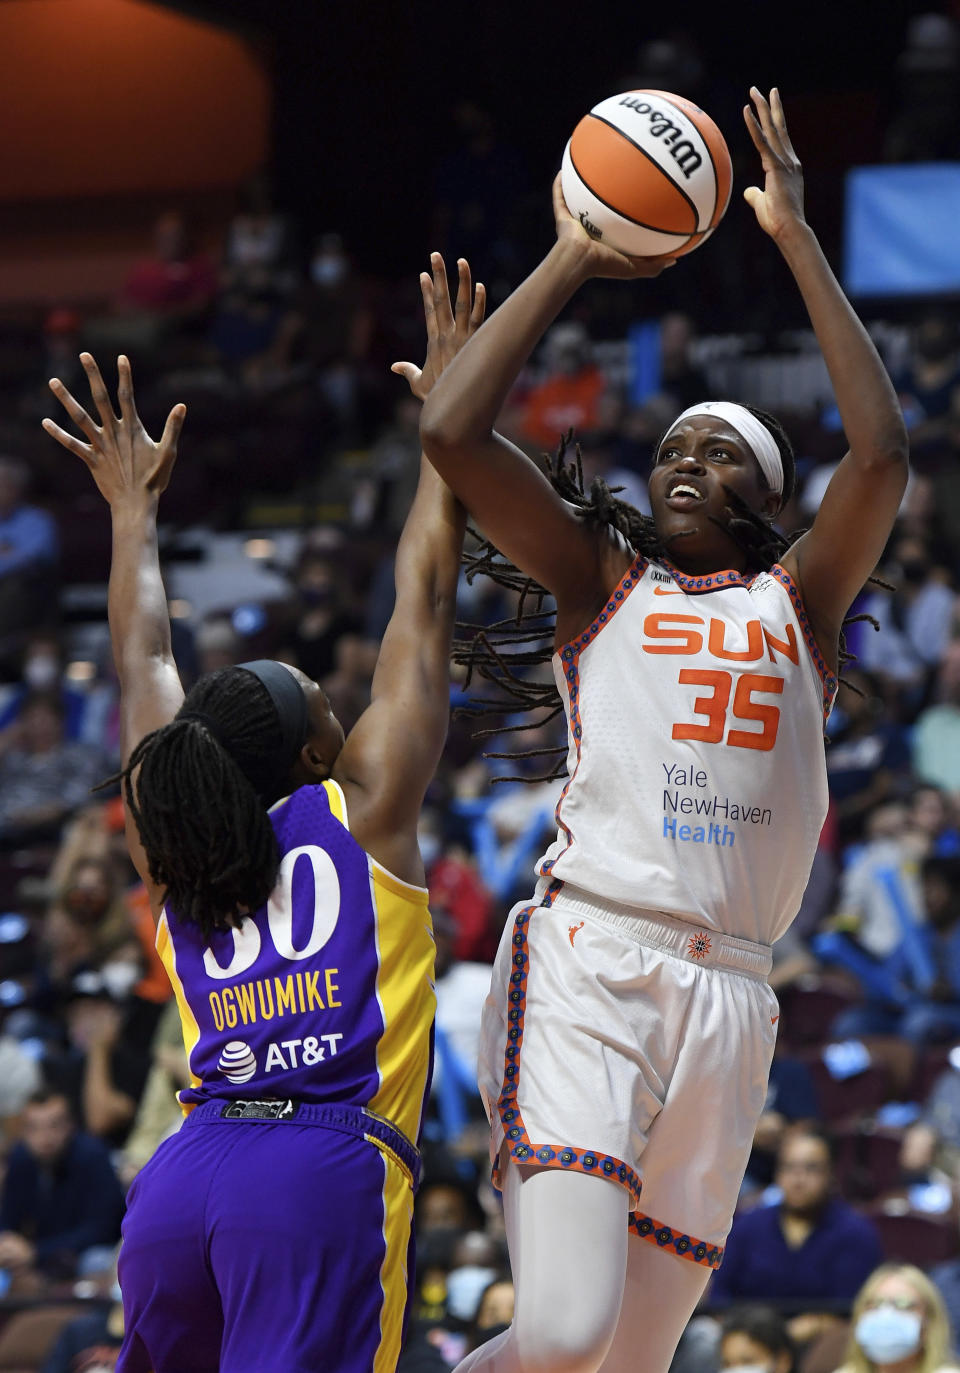 FILE - Connecticut Sun forward Jonquel Jones (35) shoots over Los Angeles Sparks forward Nneka Ogwumike (30) during a WNBA basketball game in Uncasville, Conn., in this Saturday, Aug. 28, 2021, file photo. This year, the 6-foot-6 Jones is the unanimous choice AP Player of the Year honors by the 14-member panel, announced Wednesday, Sept. 22, 2021. (Sean D. Elliot/The Day via AP, File)